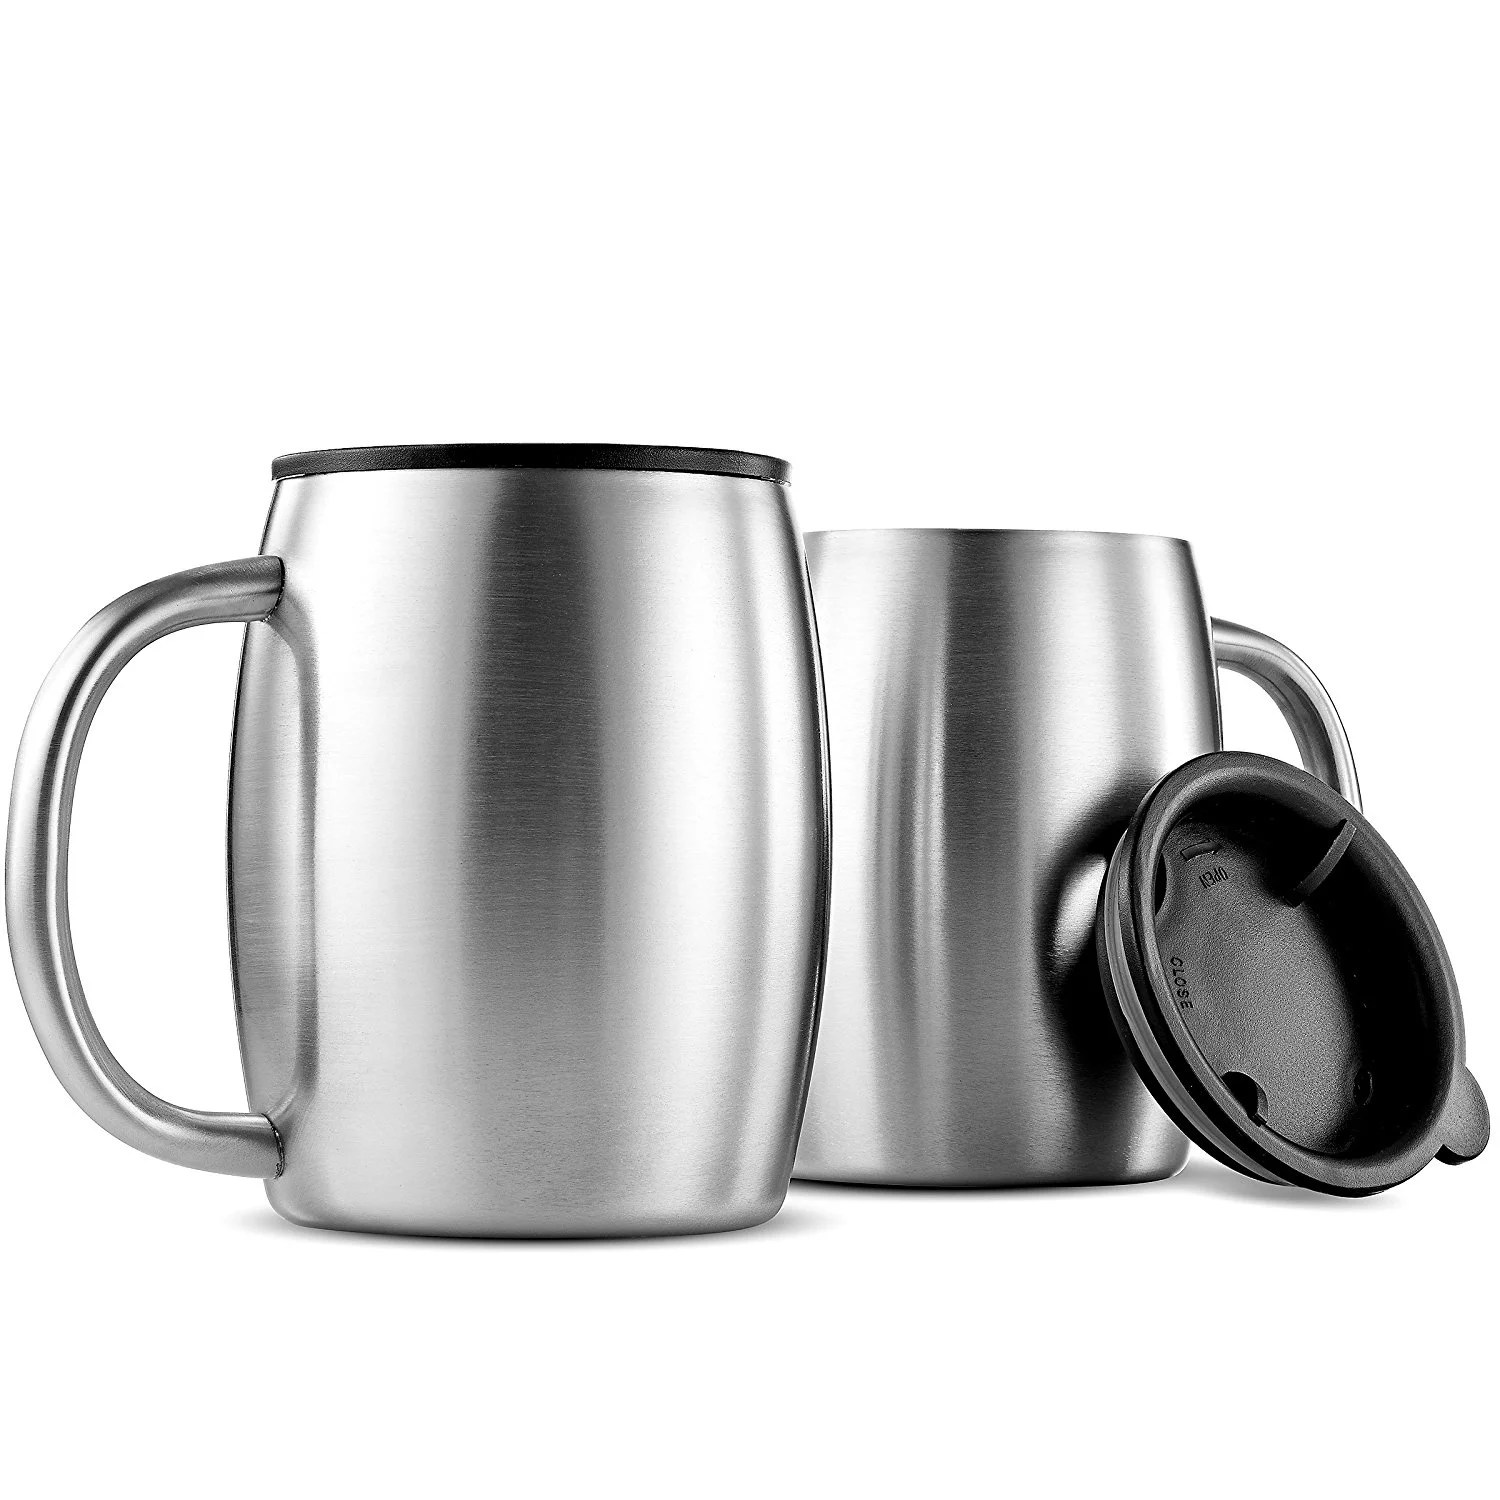 Double Handled Coffee Mugs Coffee Mugs Insulated Stainless Steel Best Mugs Design